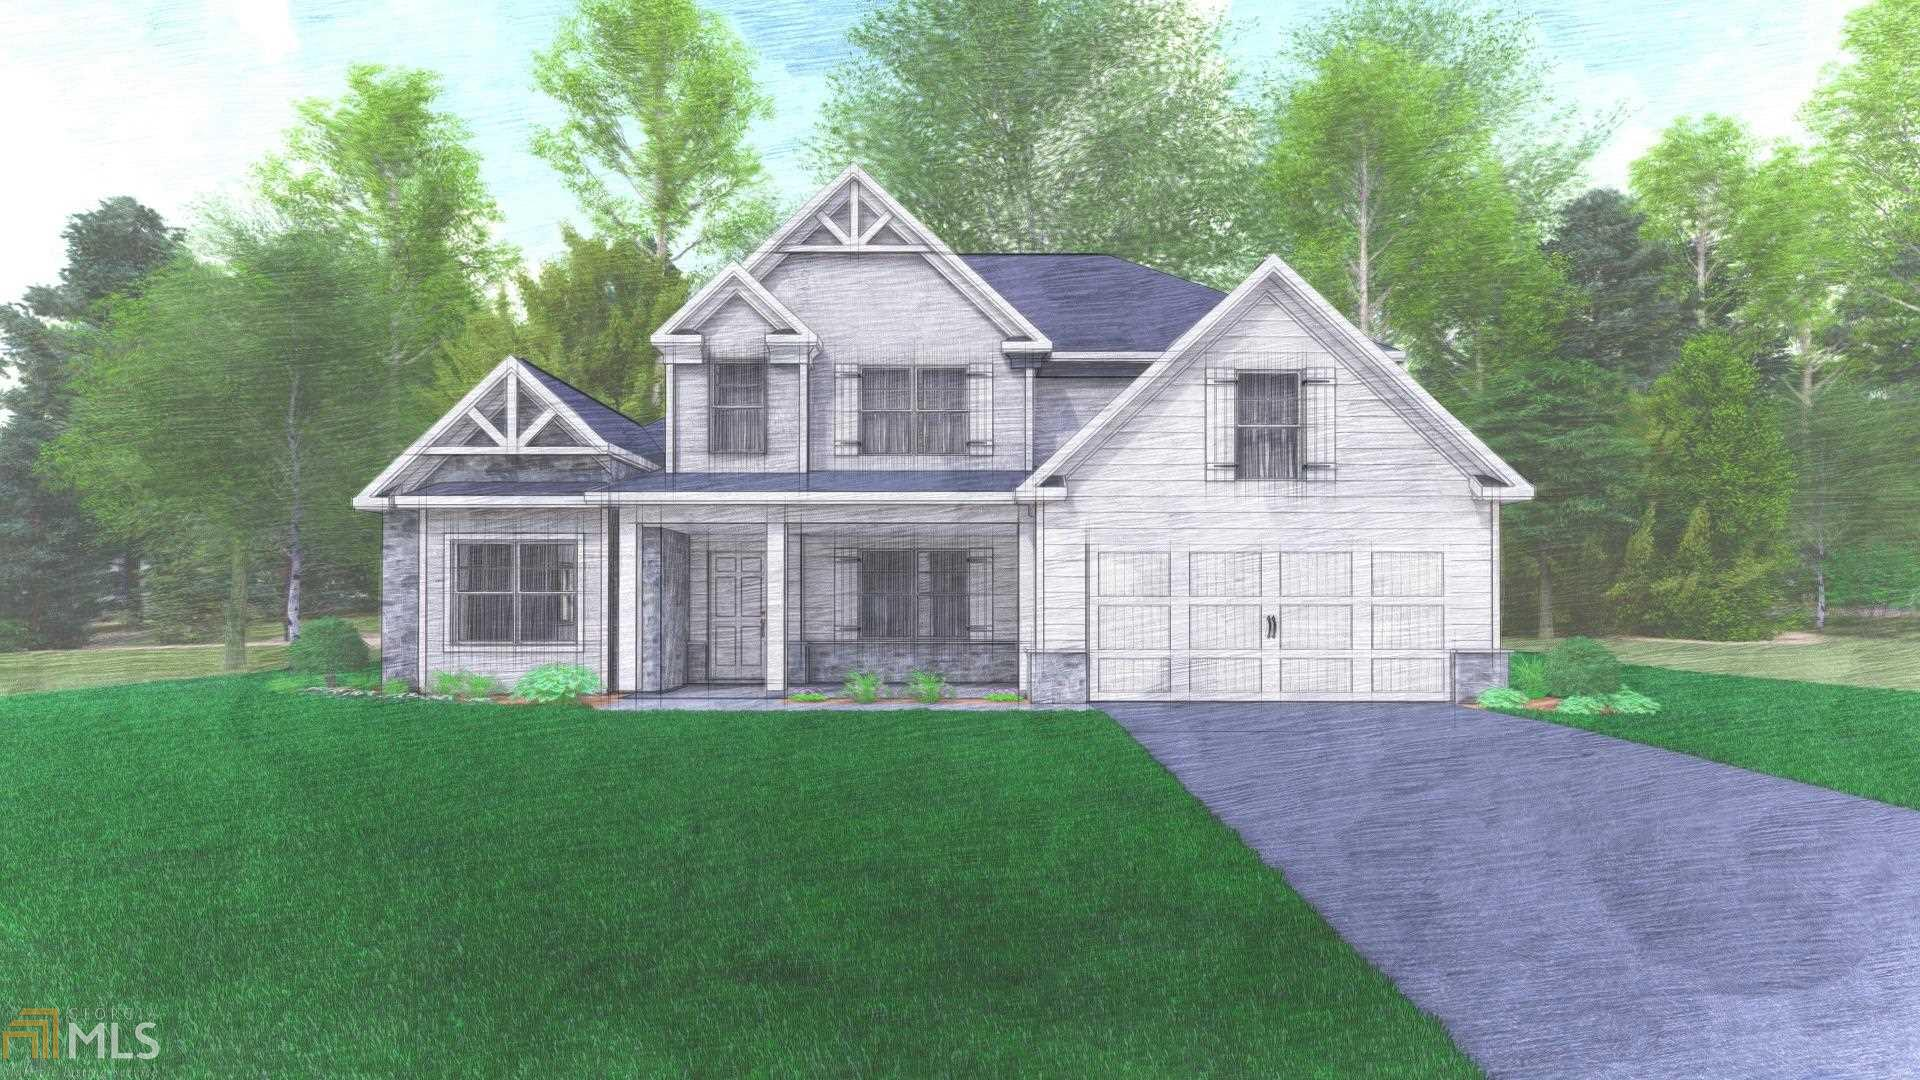 Image for property 236 Shoshone Cir 15, Kathleen, GA 31047